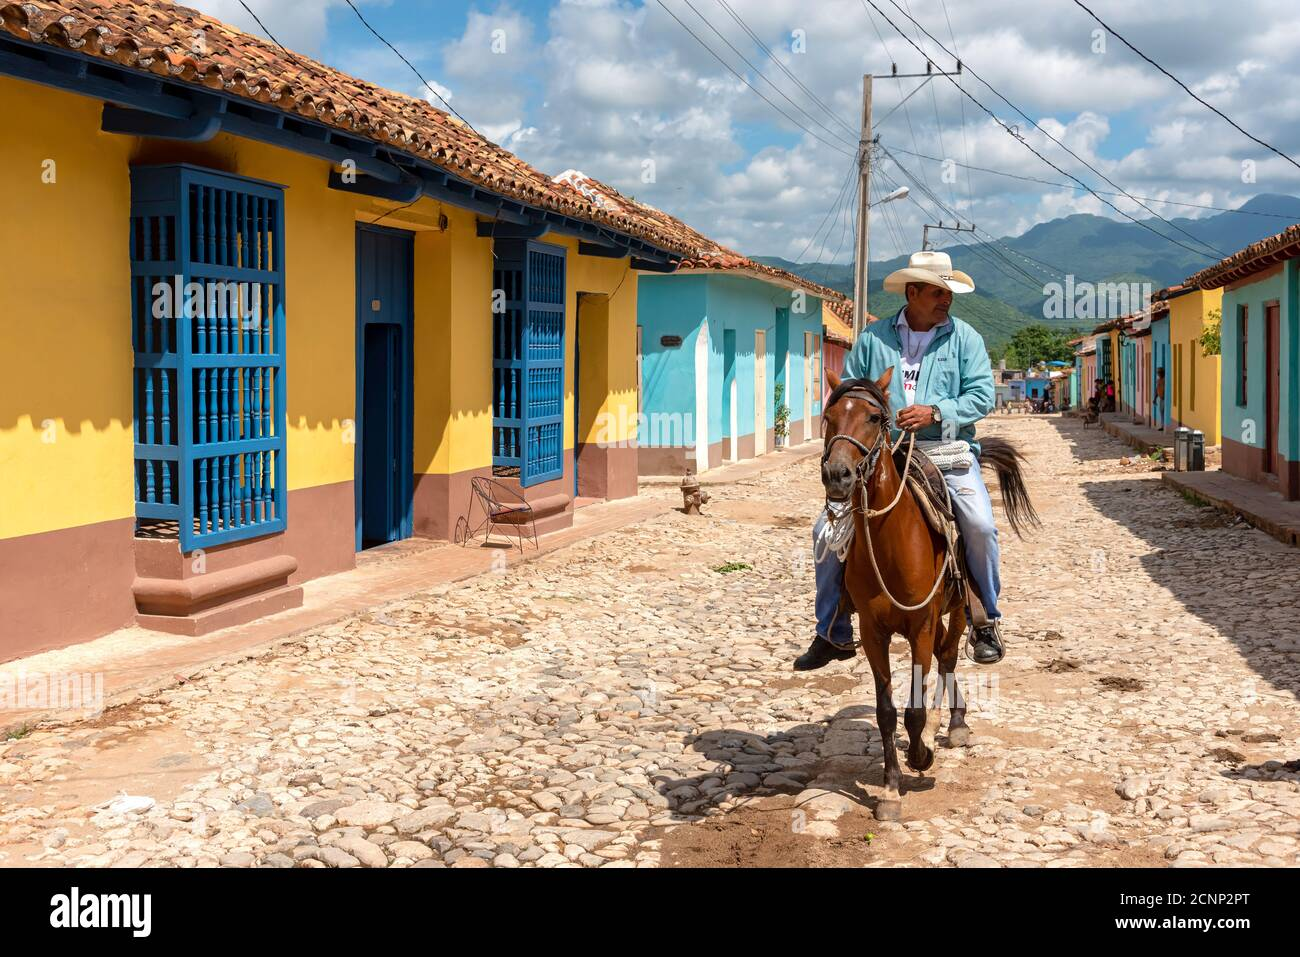 August 24, 2019: Man riding horse in the colored streets of Trinidad. Trinidad, Cuba Stock Photo